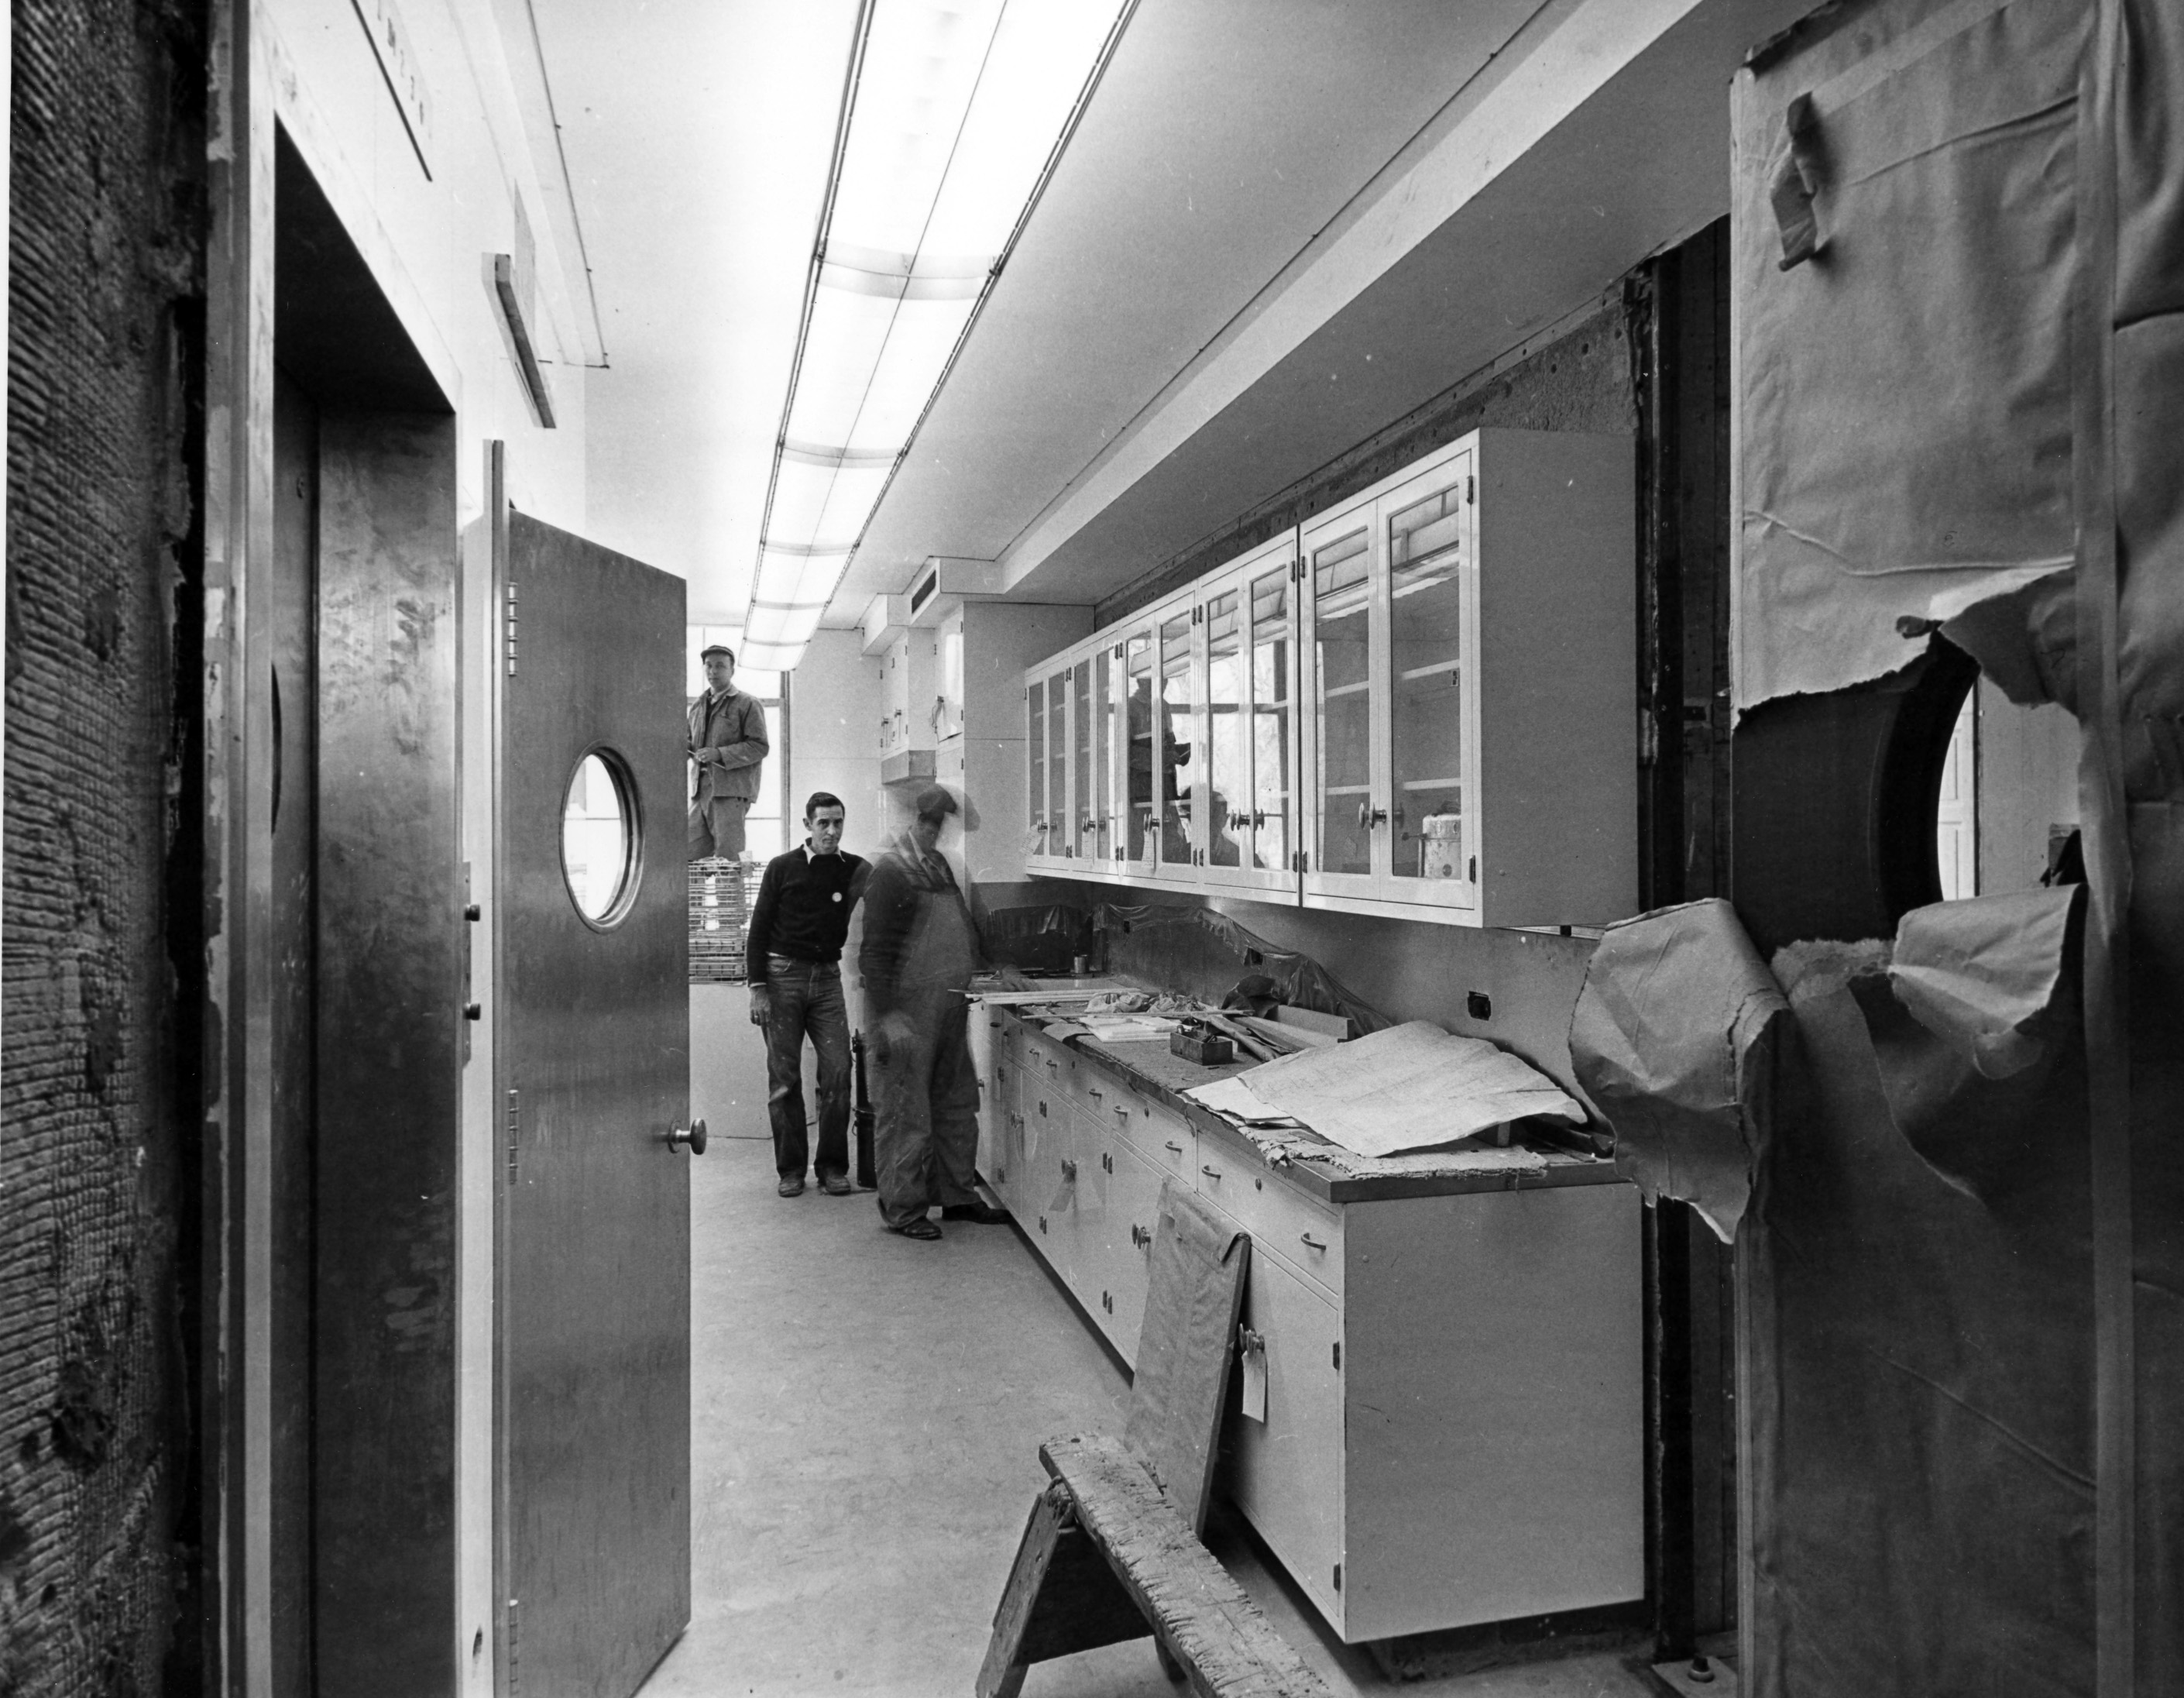 Renovation, 01/23/1952 General notes: North view inside the pantry on the first floor kitchen of the White House during the renovation